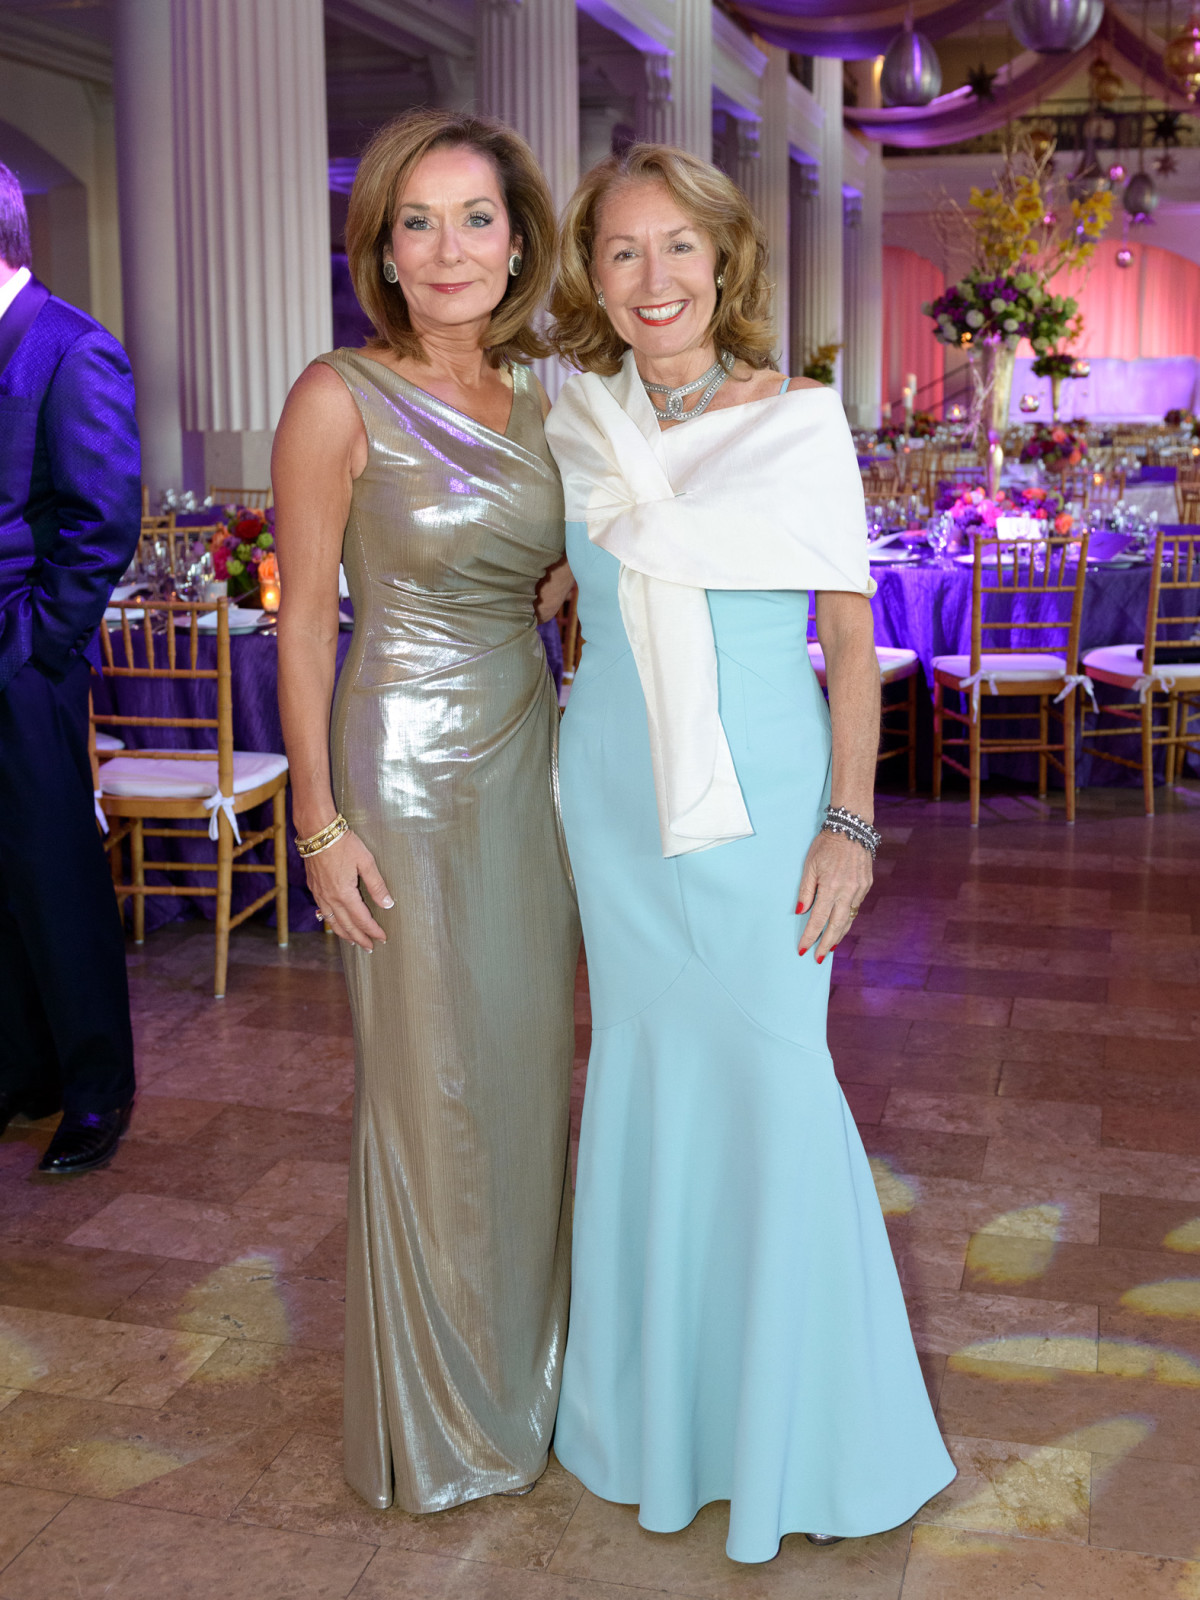 SPA, Gala April 2016, Melanie Gray, June Christensen